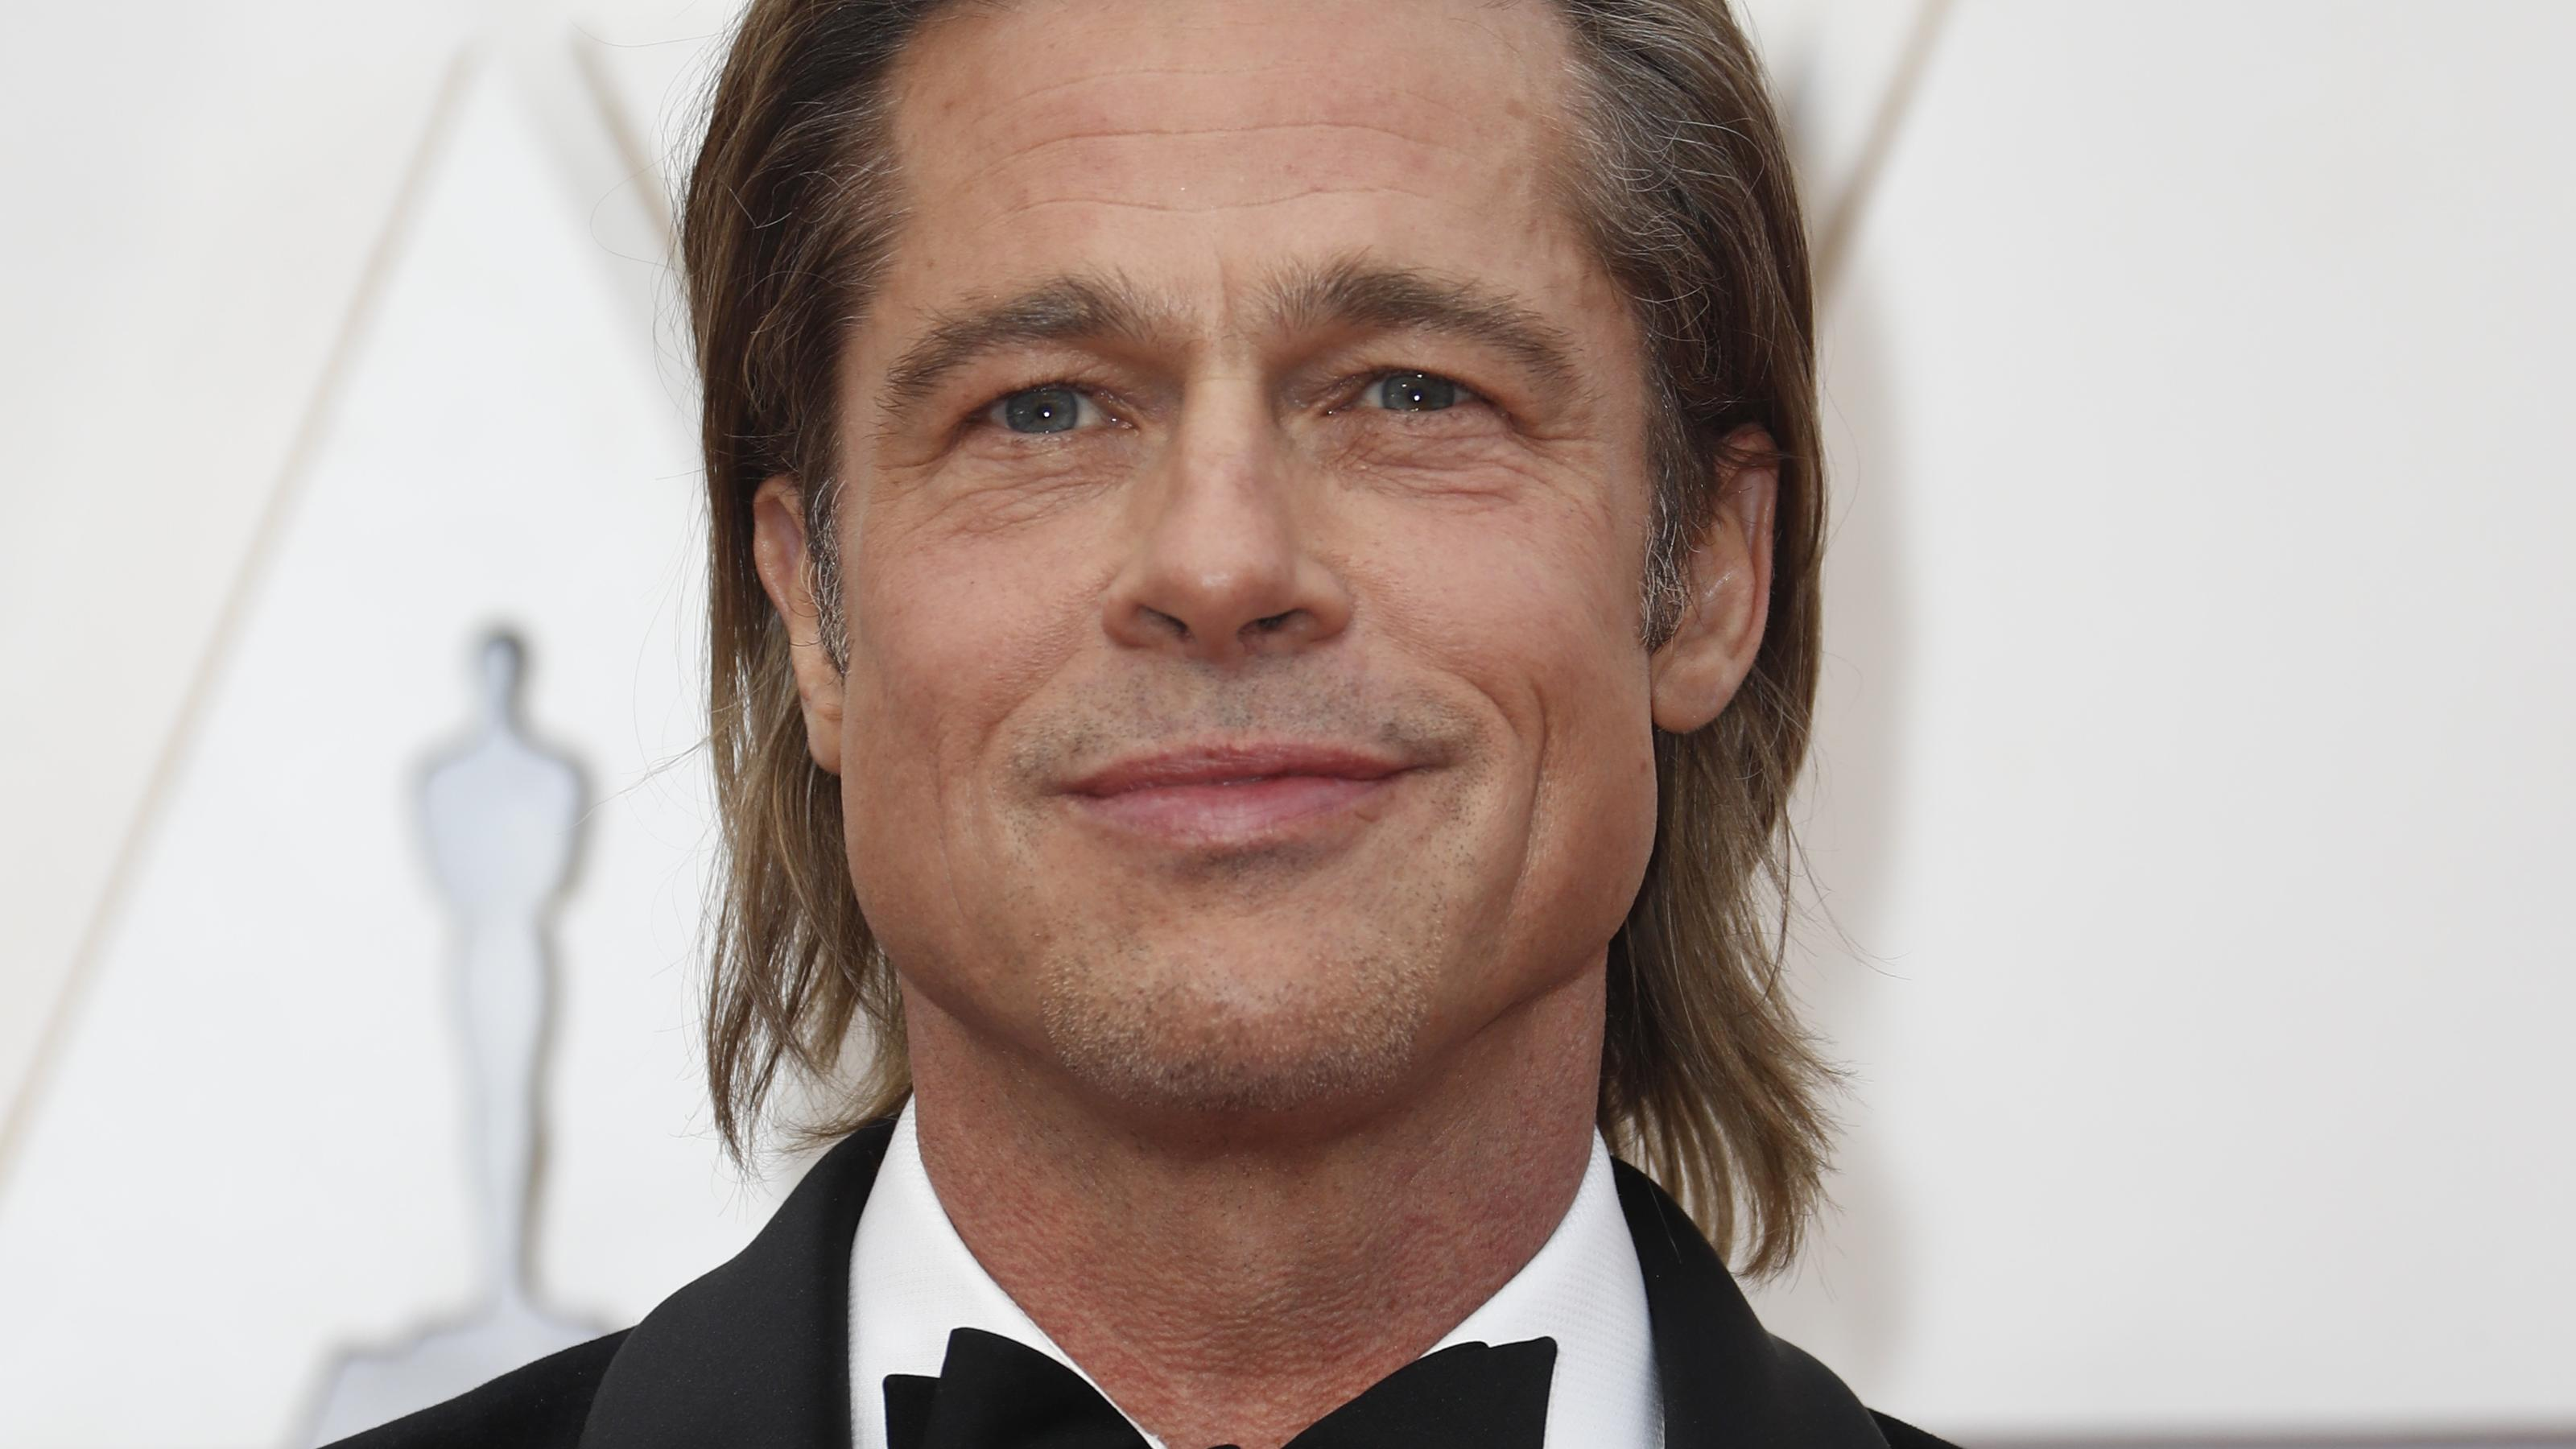 Brad Pitt poses on the red carpet during the Oscars arrivals at the 92nd Academy Awards in Hollywood, Los Angeles, California, U.S., February 9, 2020. REUTERS/Eric Gaillard